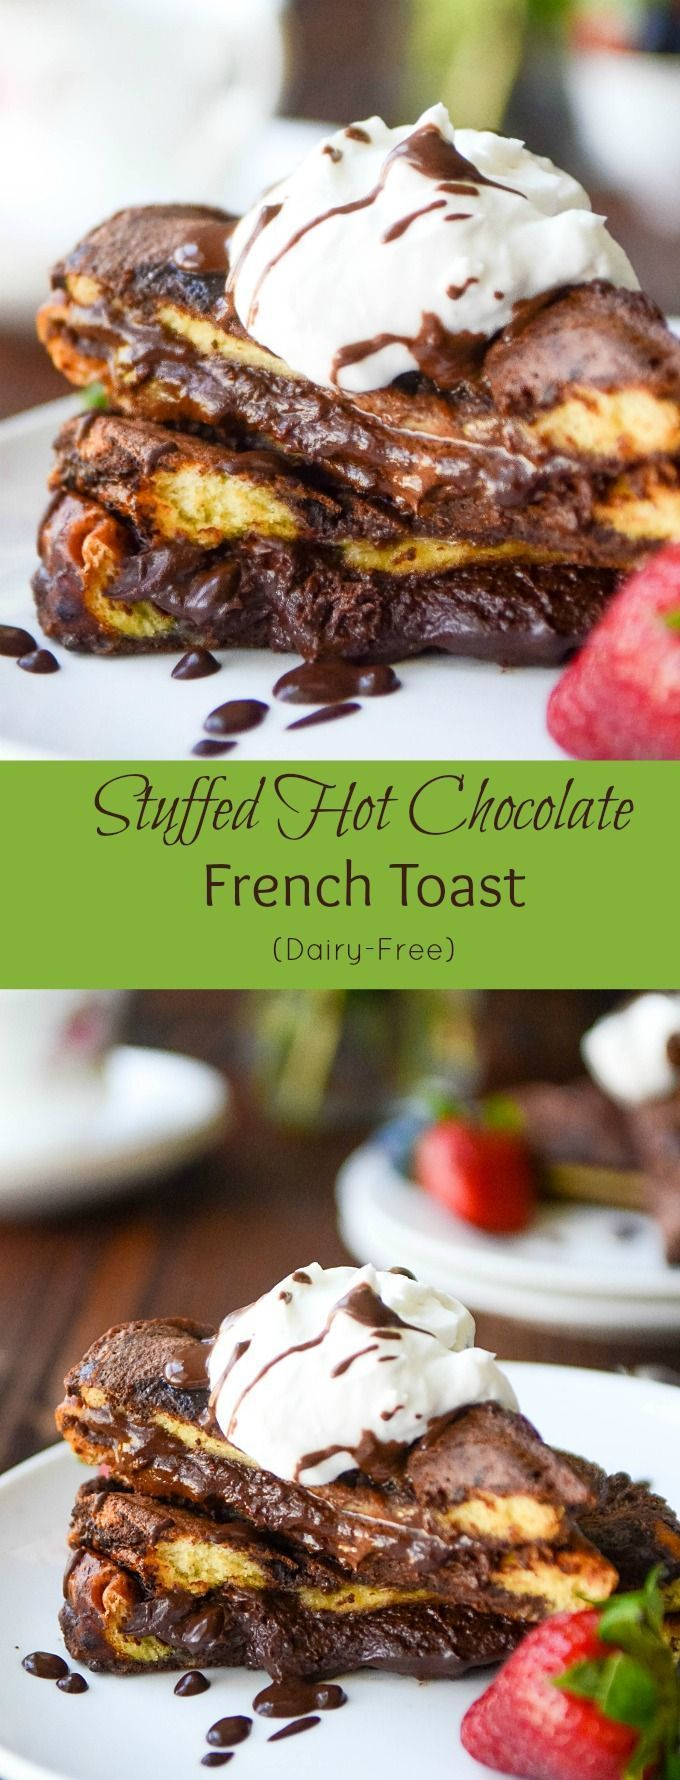 STUFFED with decadent chocolate ganache and coconut cream, this French Toast recipe is sure to become your favorite breakfast or dessert.